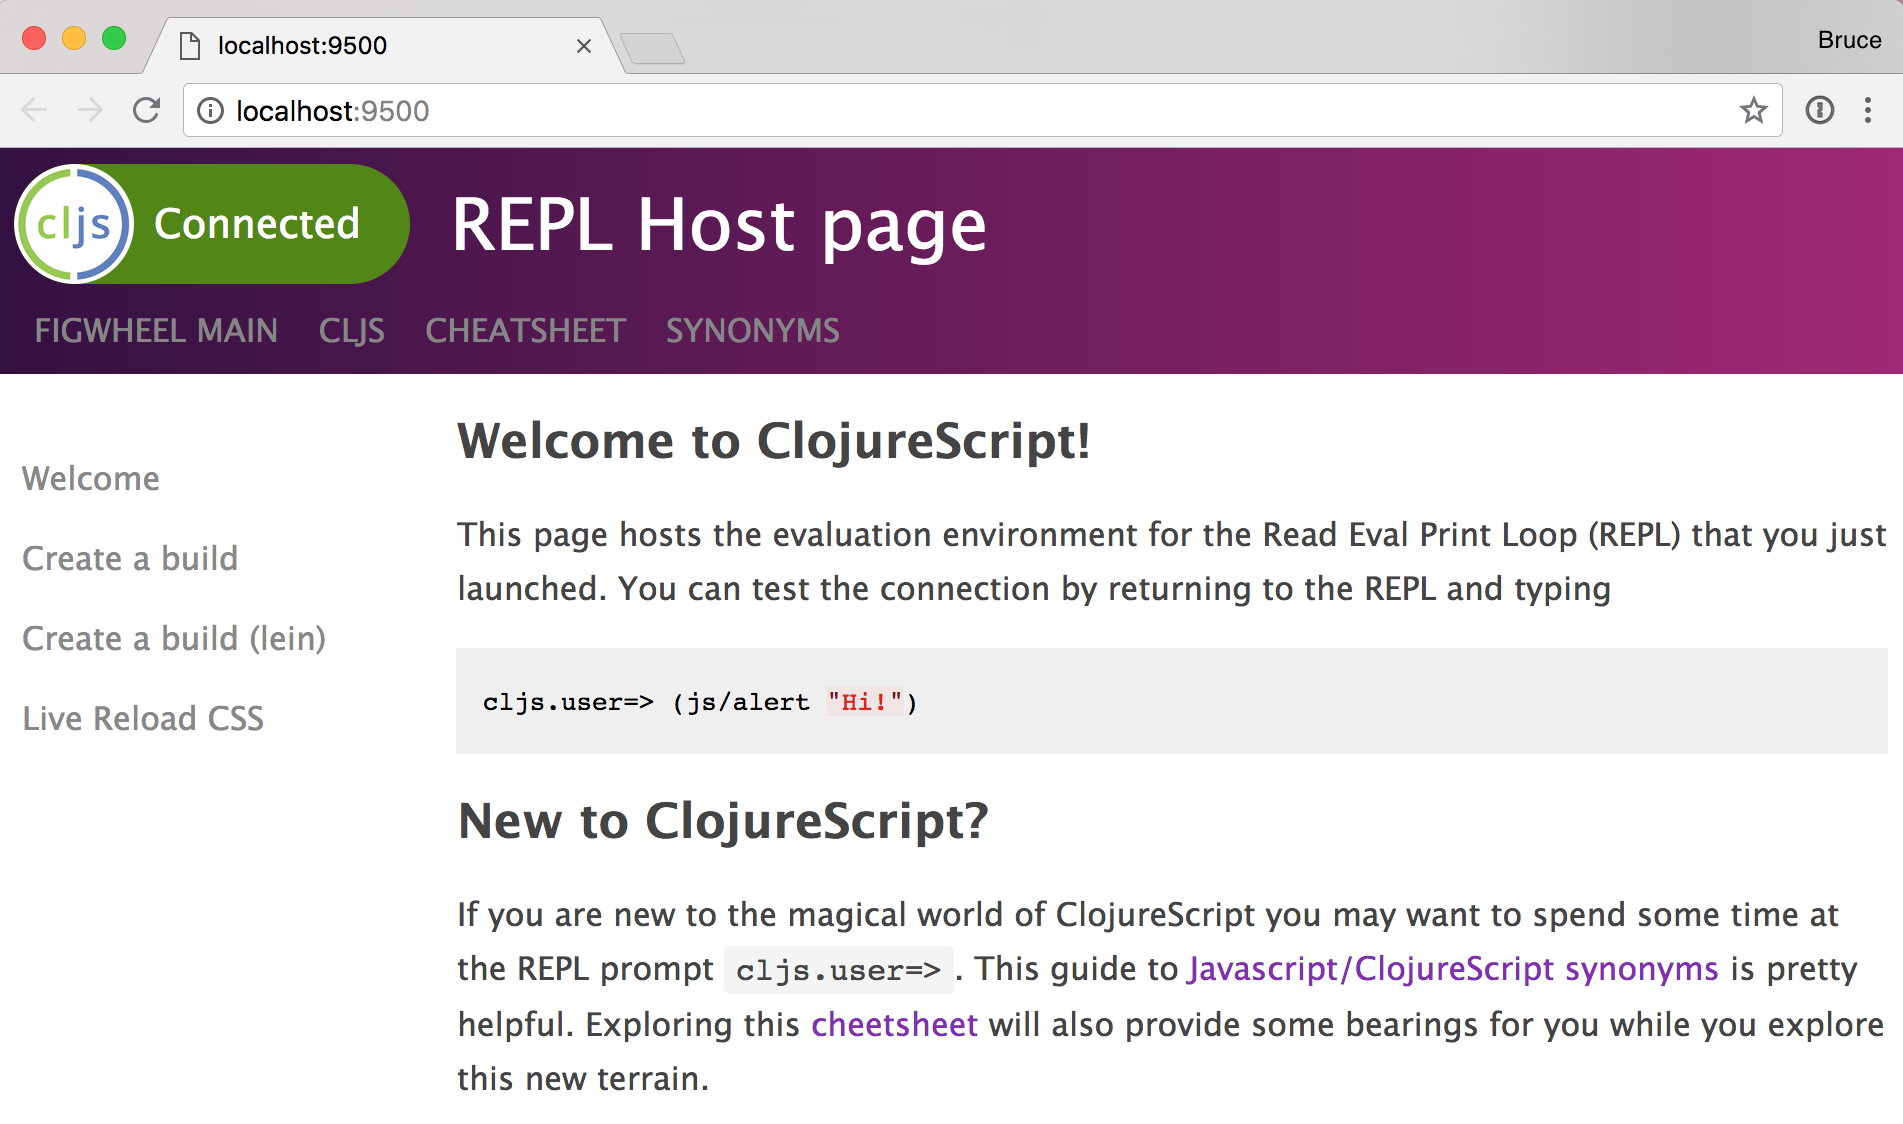 Repl host page in browser